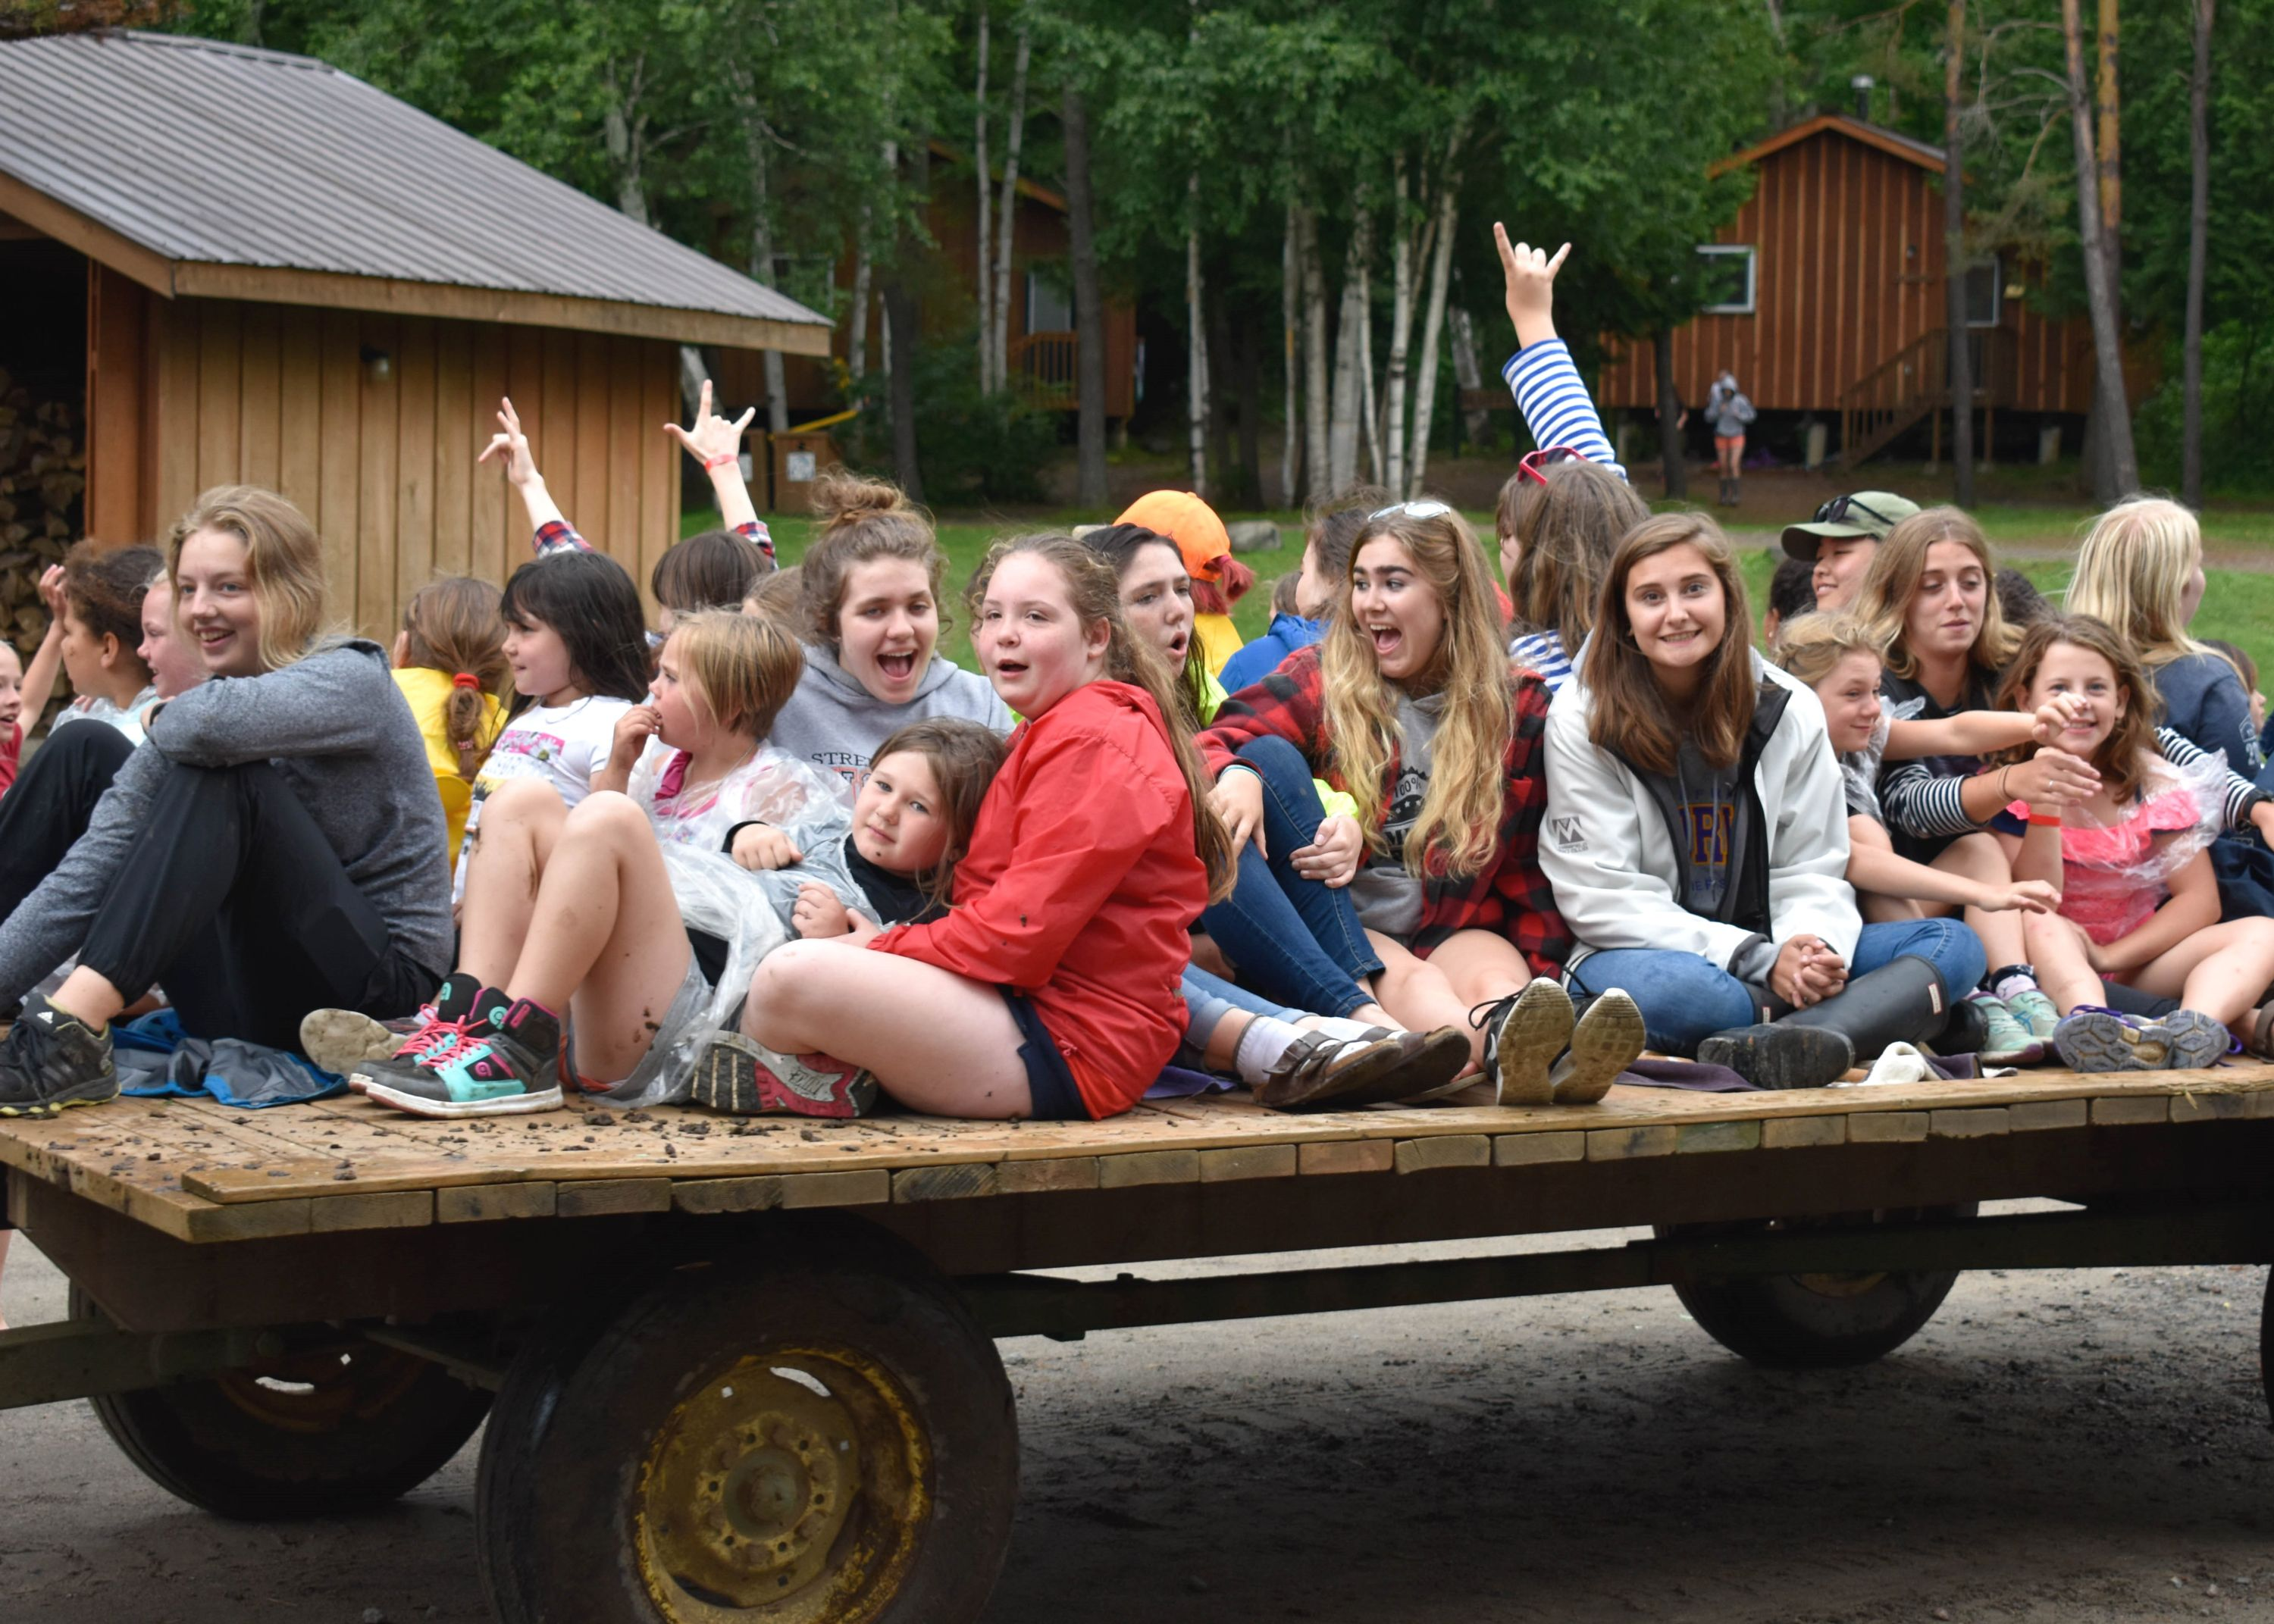 Campers on wagon at christian adventure summer camp in haliburton, ontario